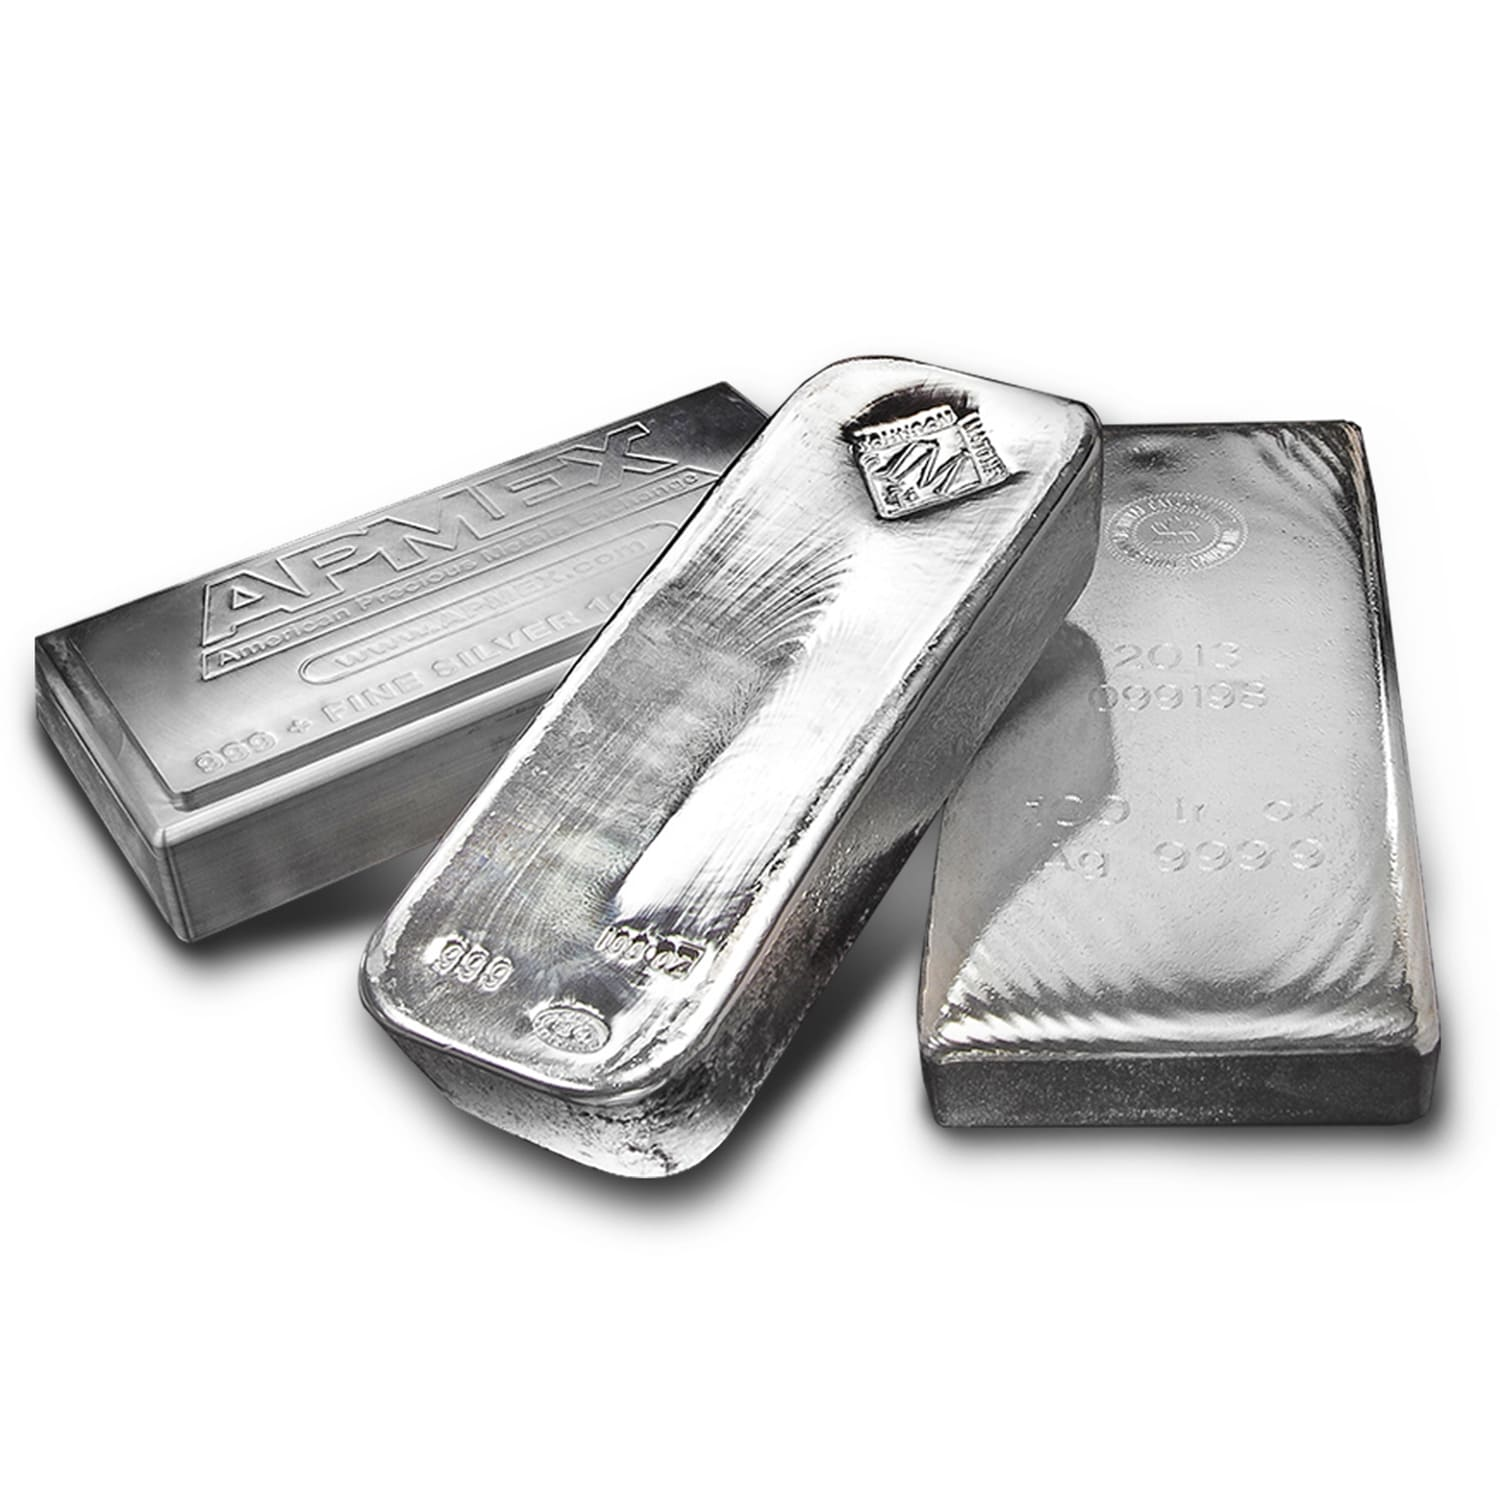 100.37 oz Silver Bar - Secondary Market